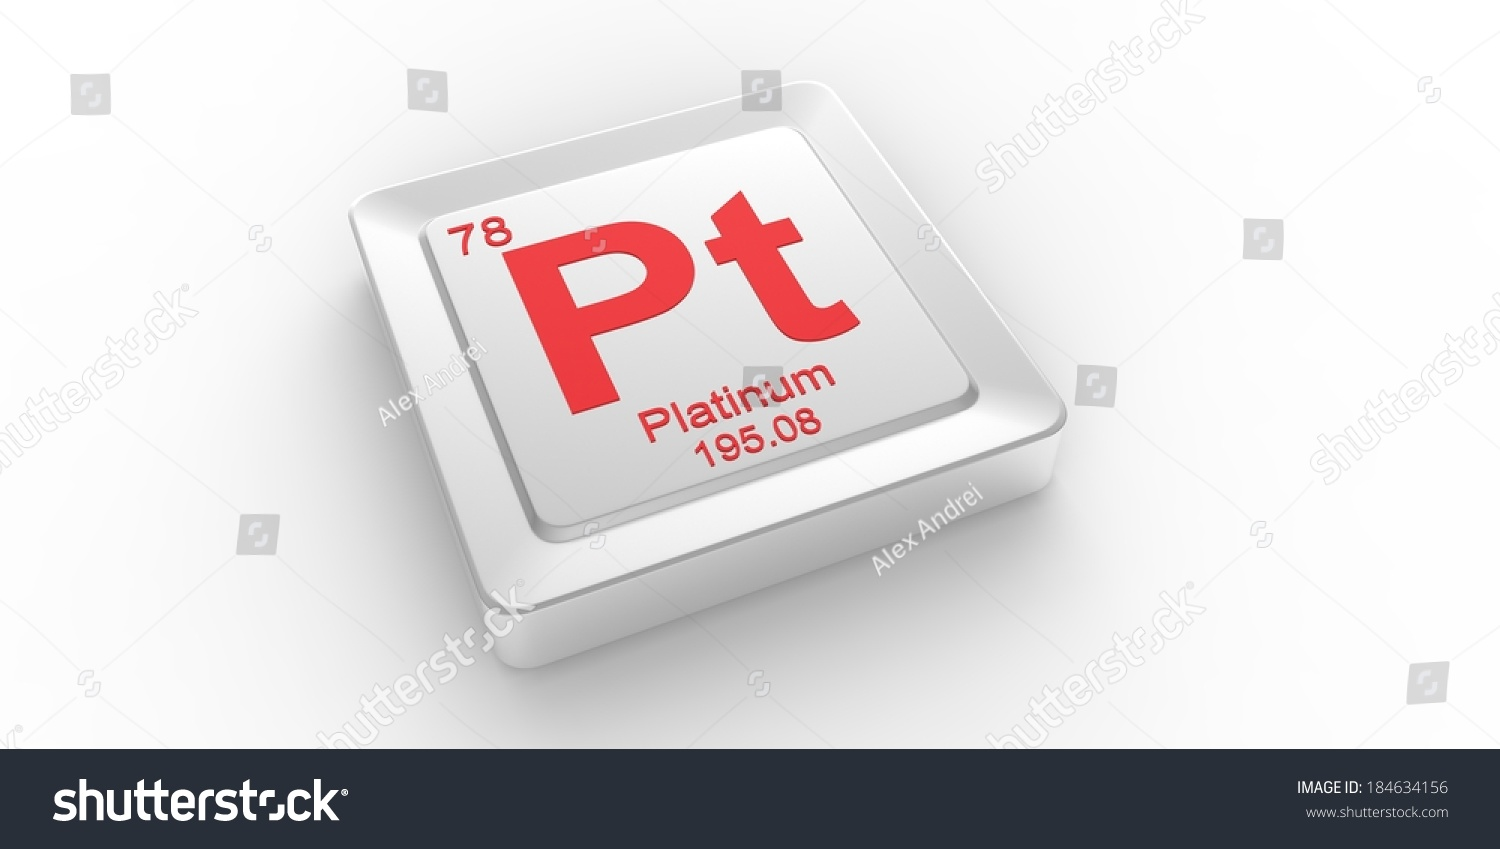 Heaviest metal periodic table choice image periodic table images periodic table lightest to heaviest gallery periodic table images pt symbol periodic table aviongoldcorp pt symbol gamestrikefo Image collections